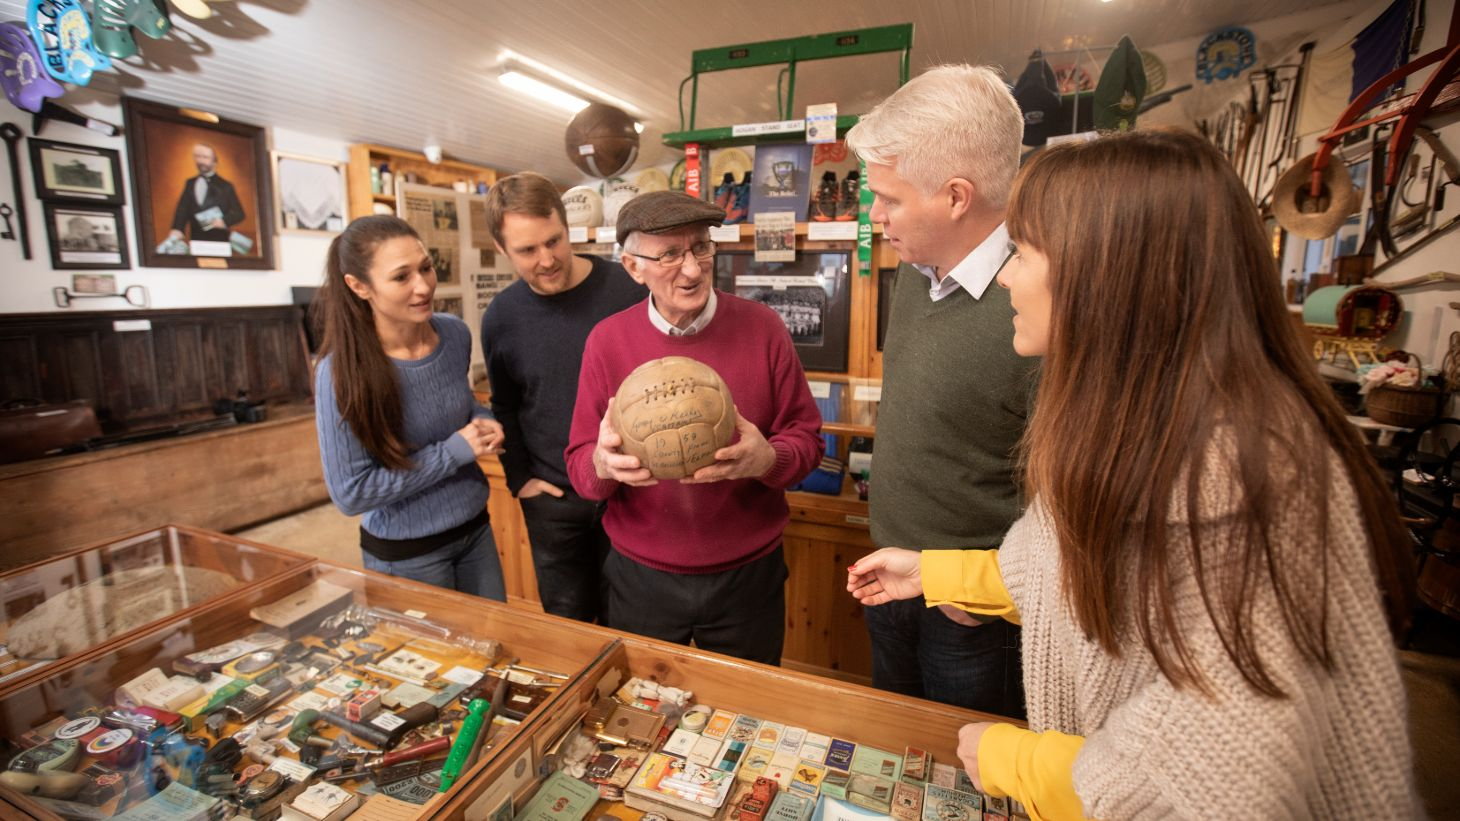 Take a deep dive into the past at the award-winning Derryglad Folk and Heritage Museum.